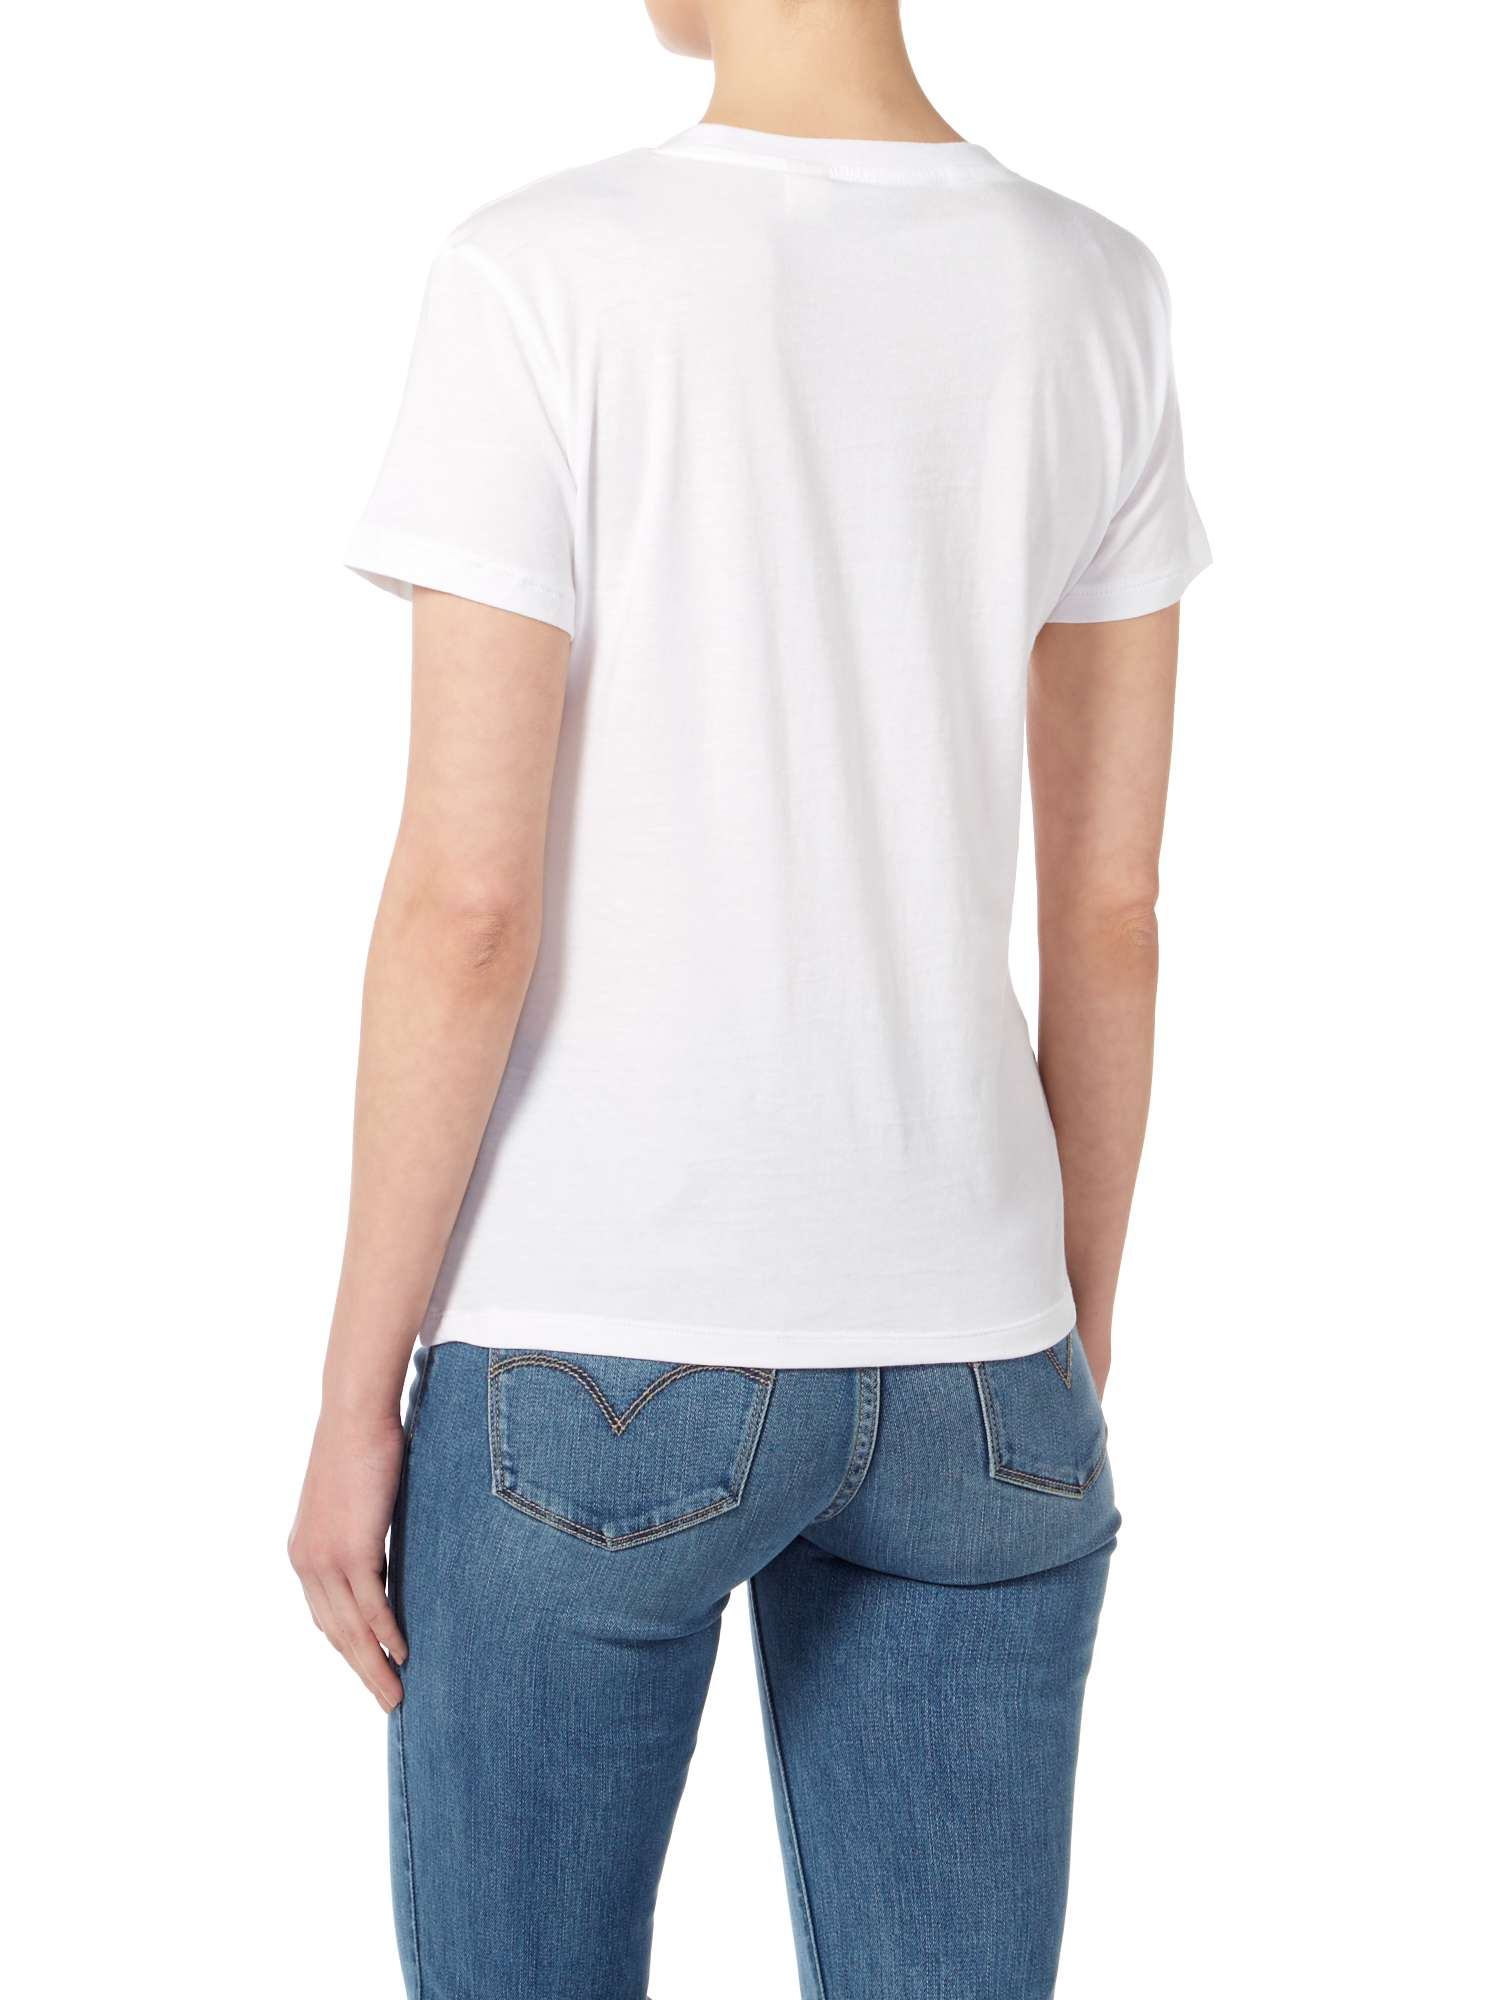 T Sleeve Logo White shirt In Batwing Short Levi's Bright IFqC1wR6q